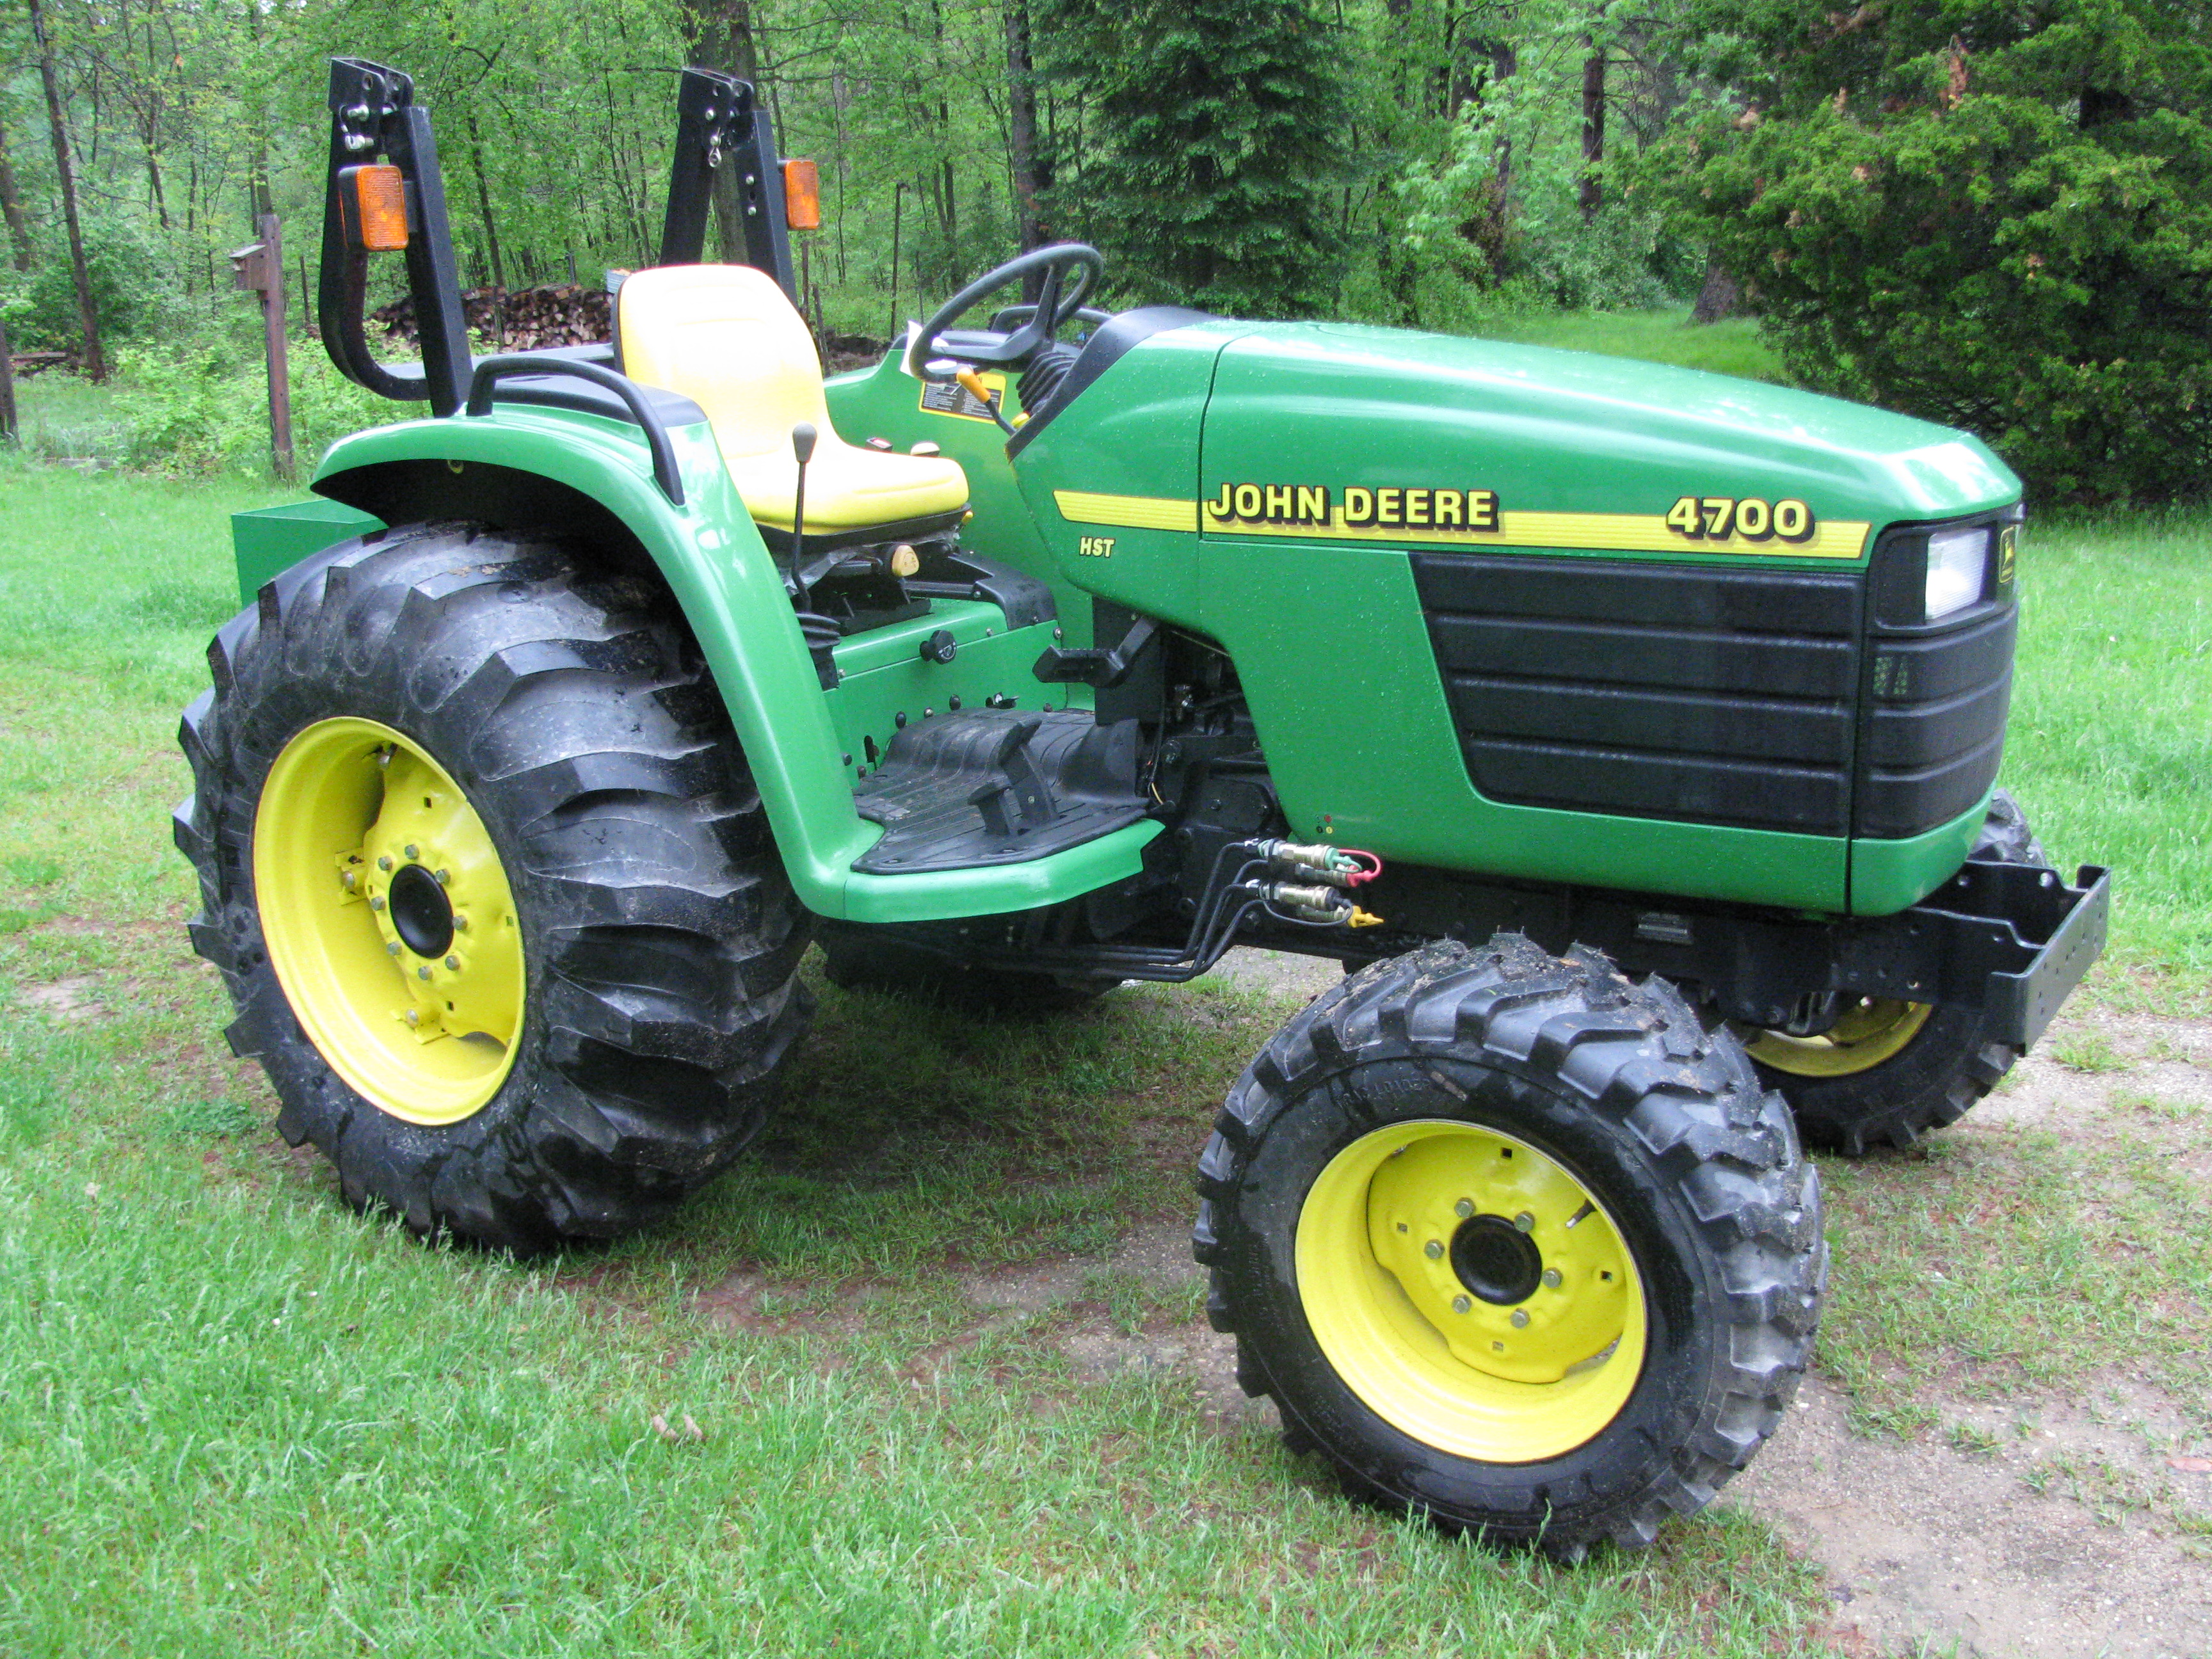 John Deere 4700 Photo Gallery - TractorByNet.com